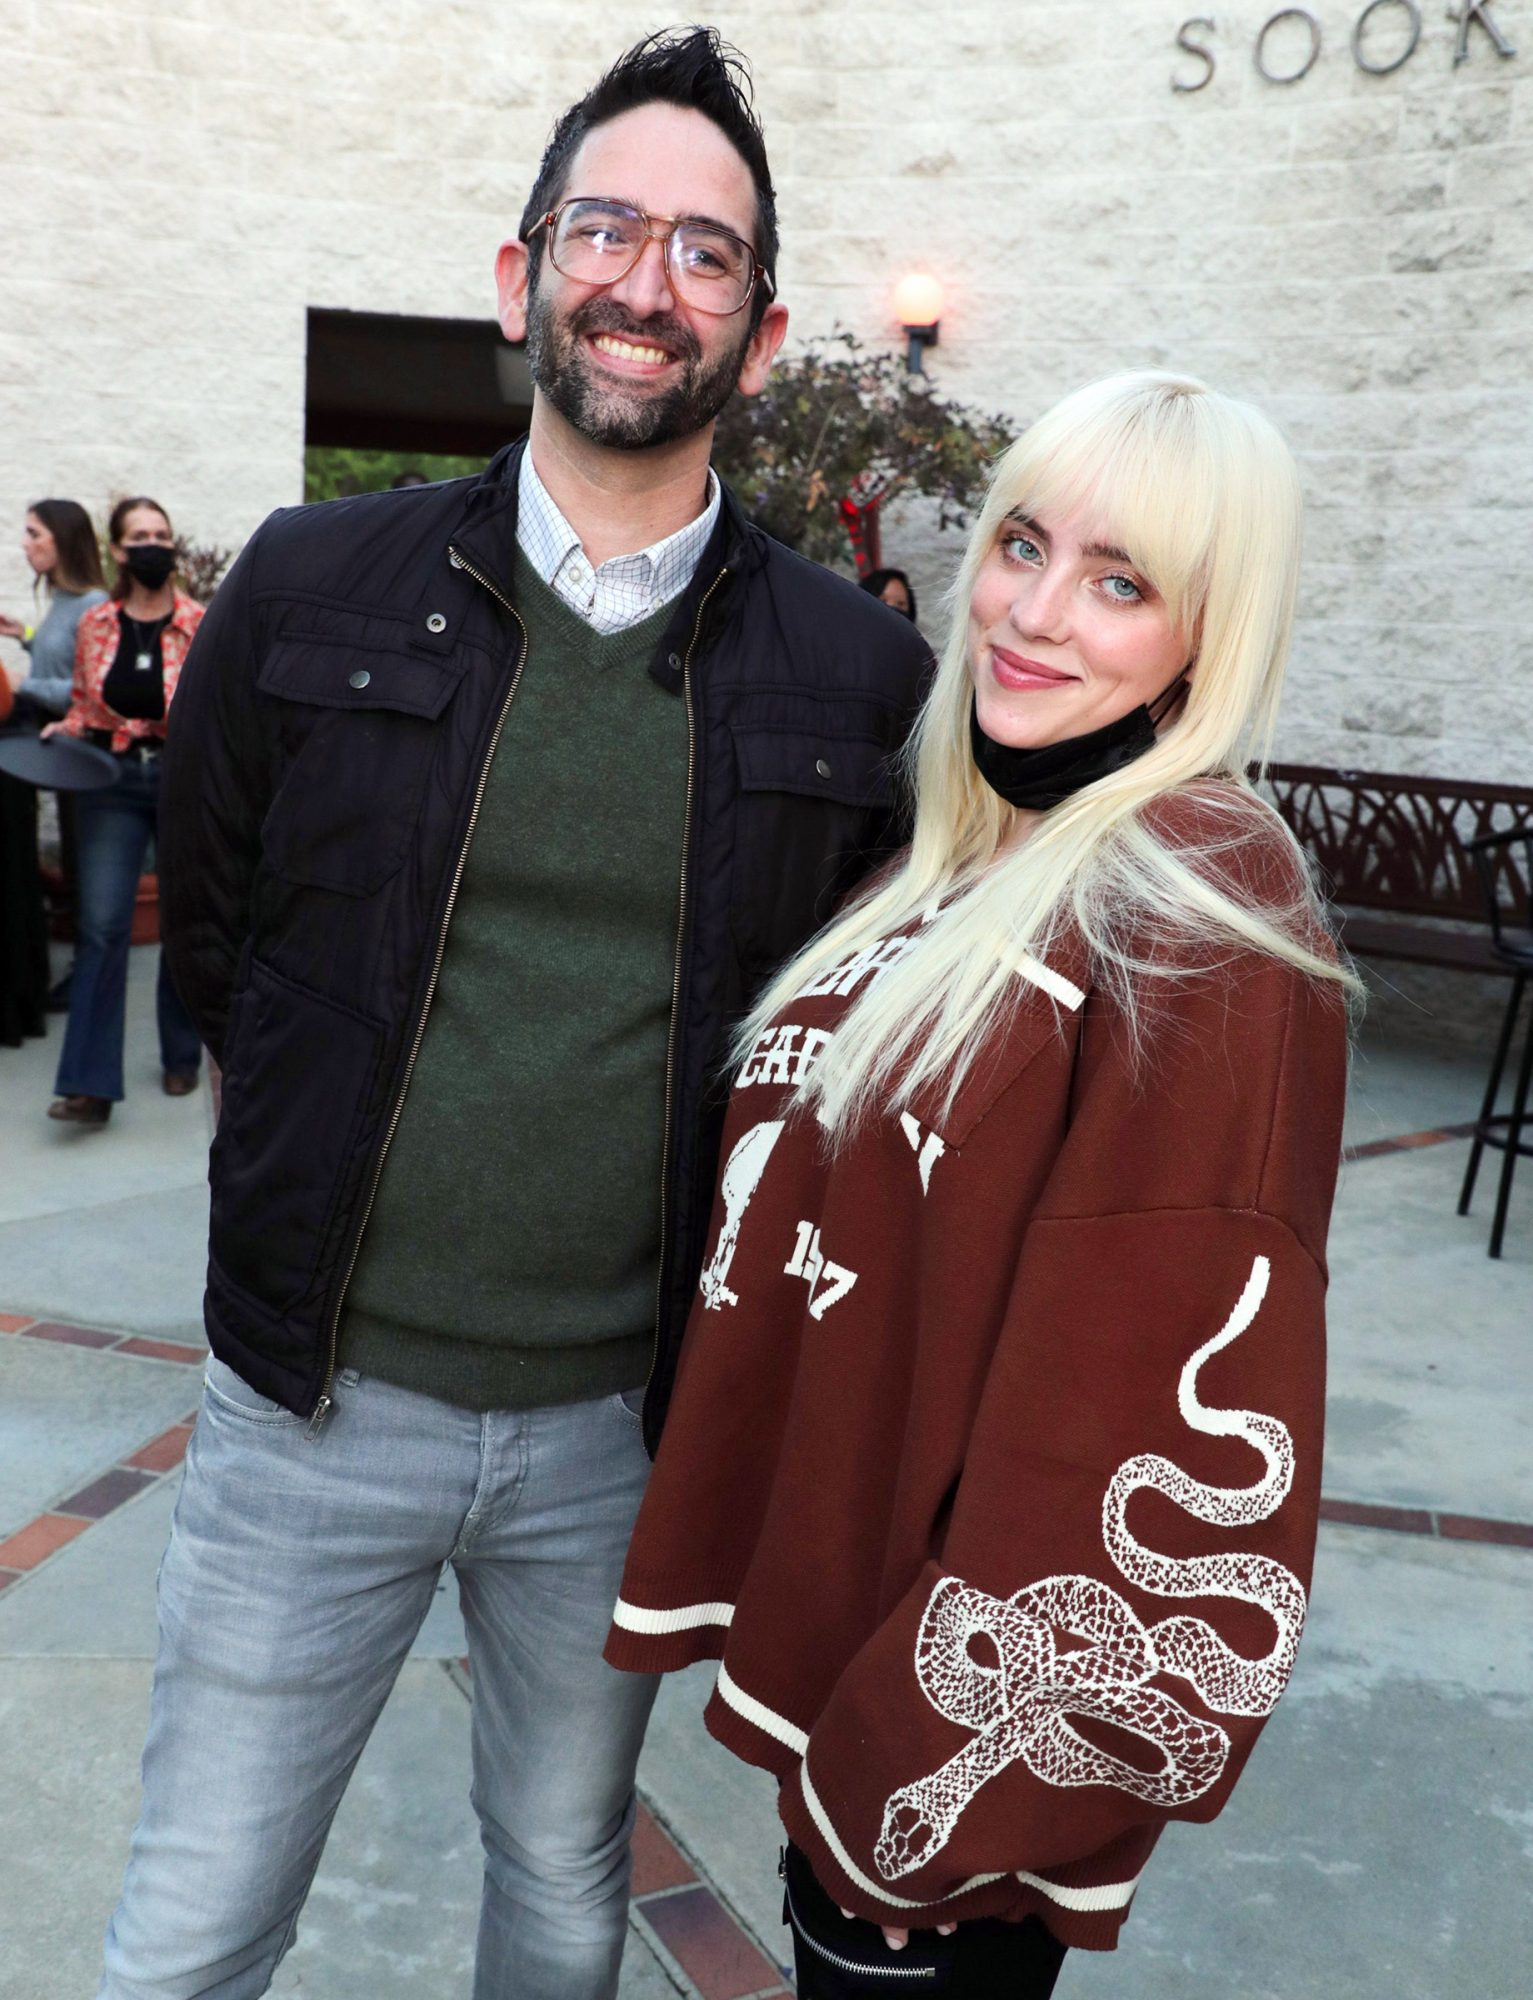 Director Michael Chaves and Billie Eilish New Line Cinema 'The Conjuring: The Devil Made Me Do It' special film screening, Los Angeles, California, USA - 27 May 2021